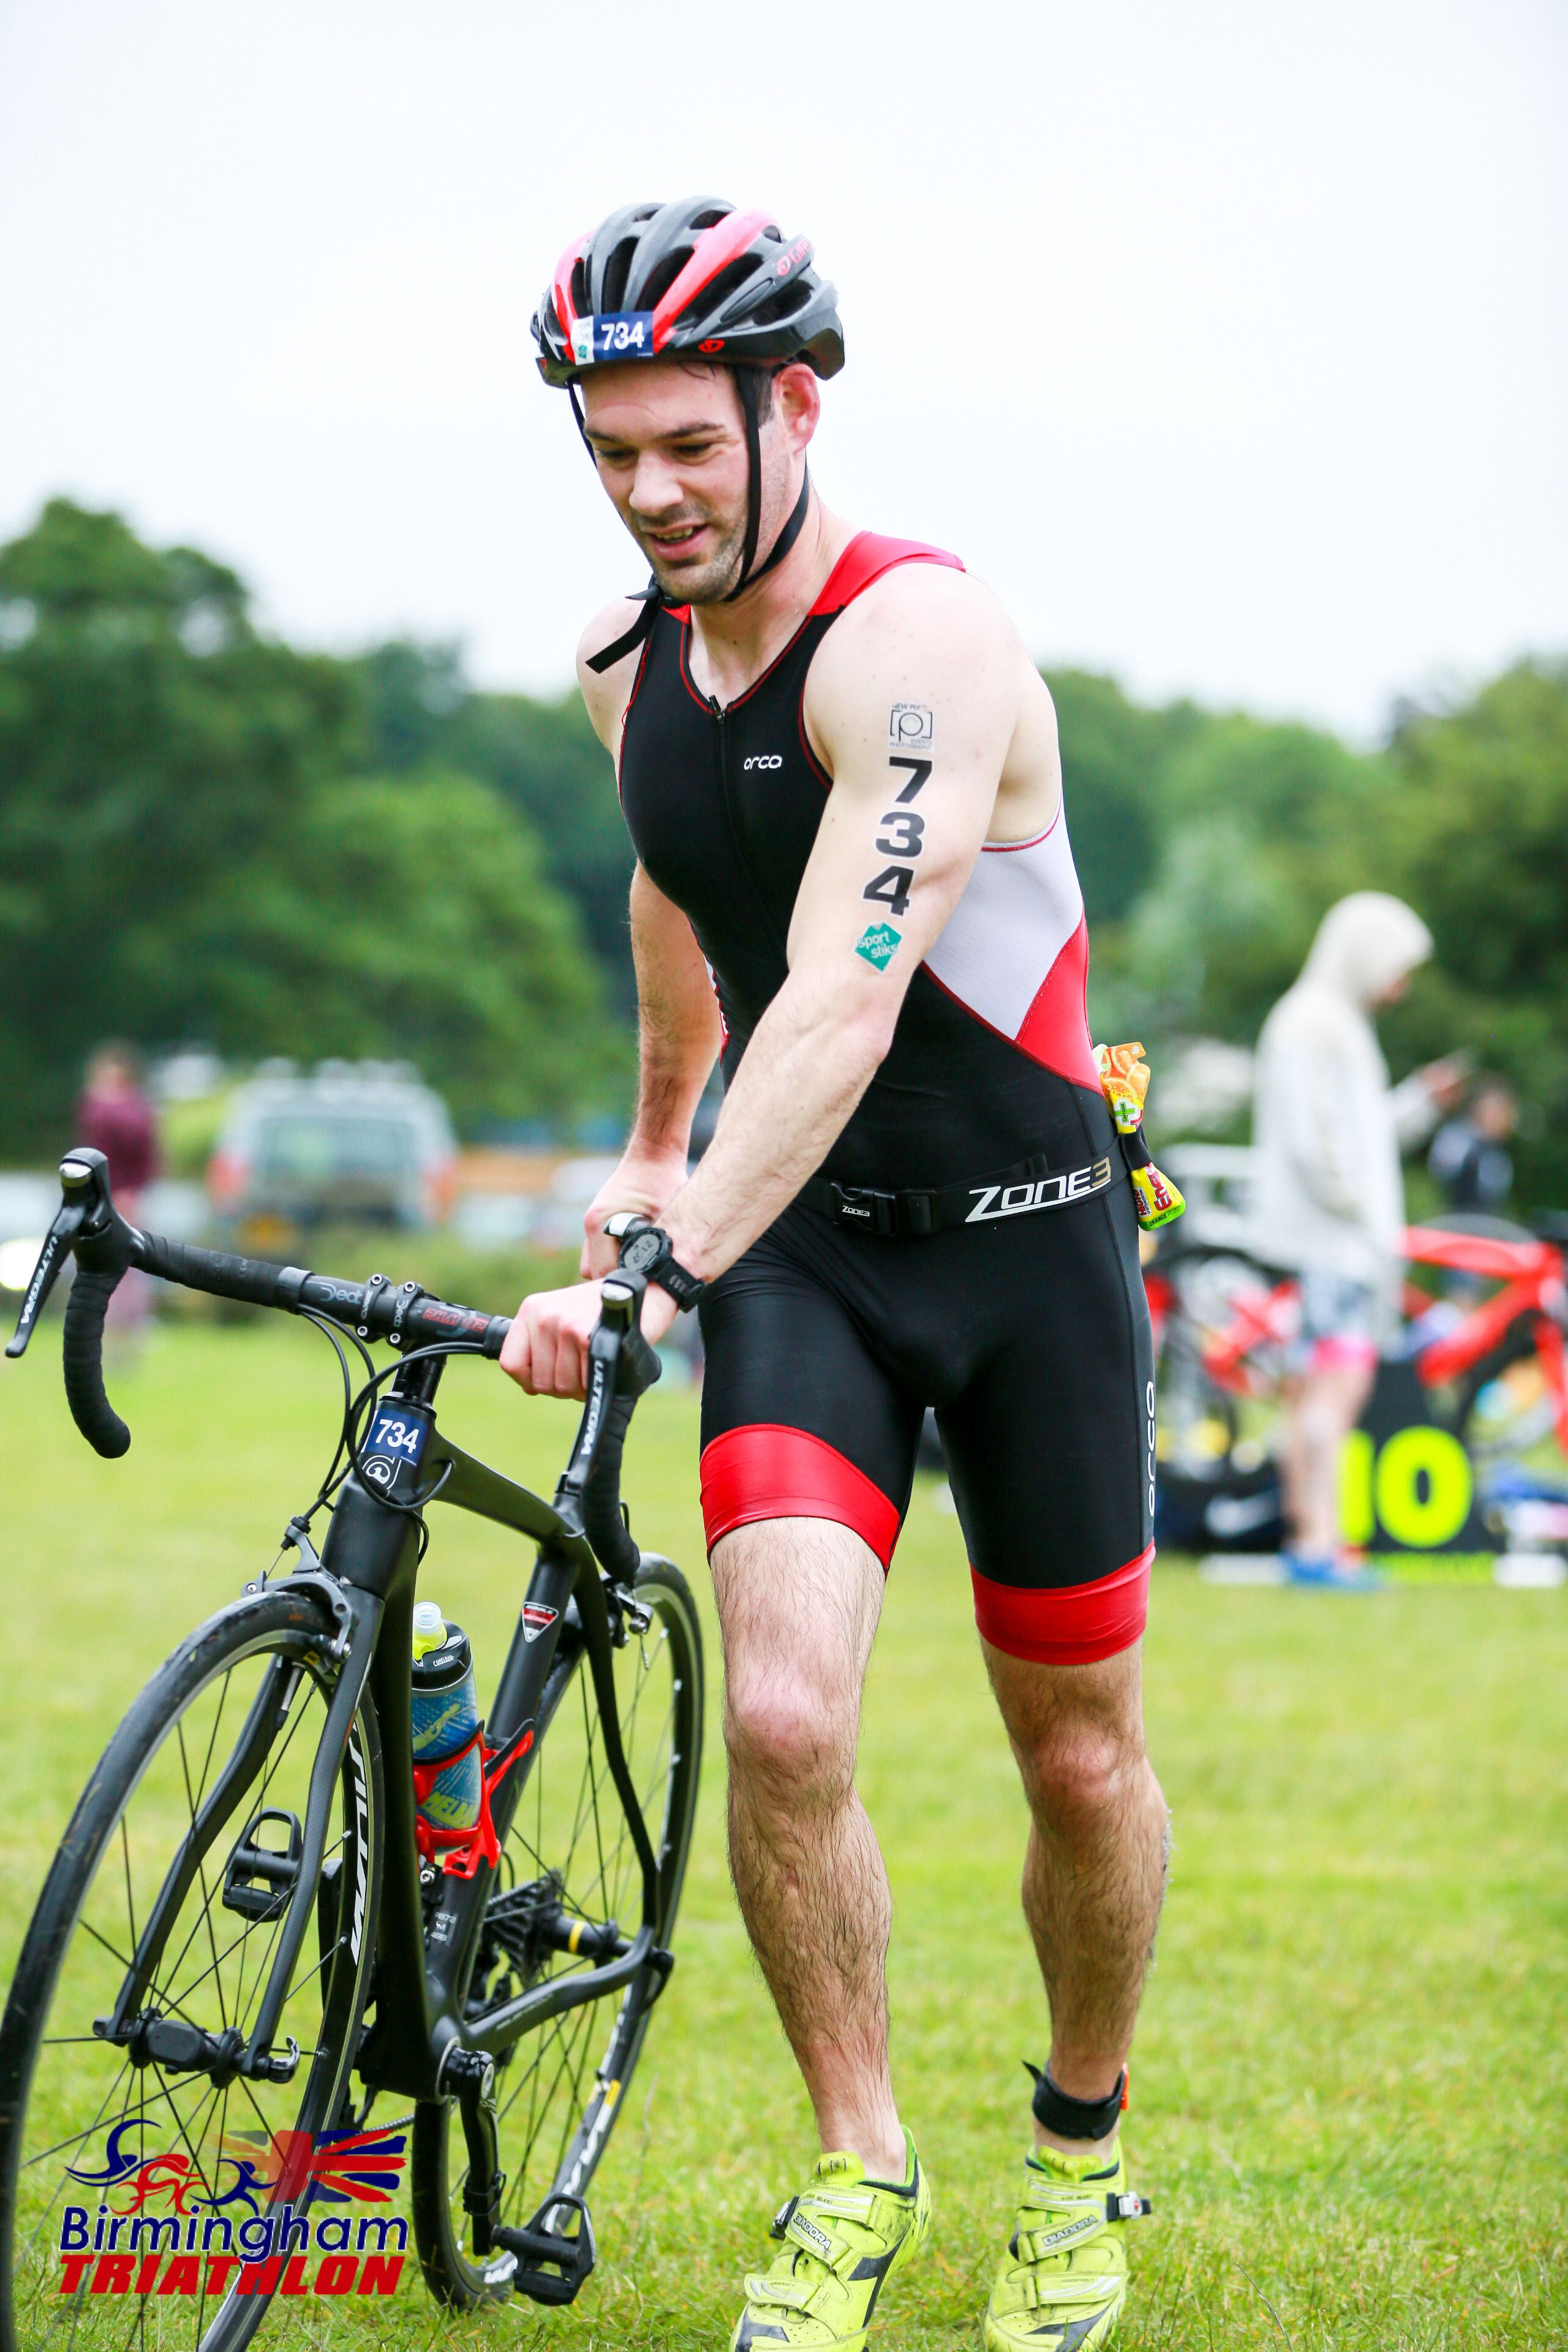 Birmingham_Triathlon_2019-Transition-51_